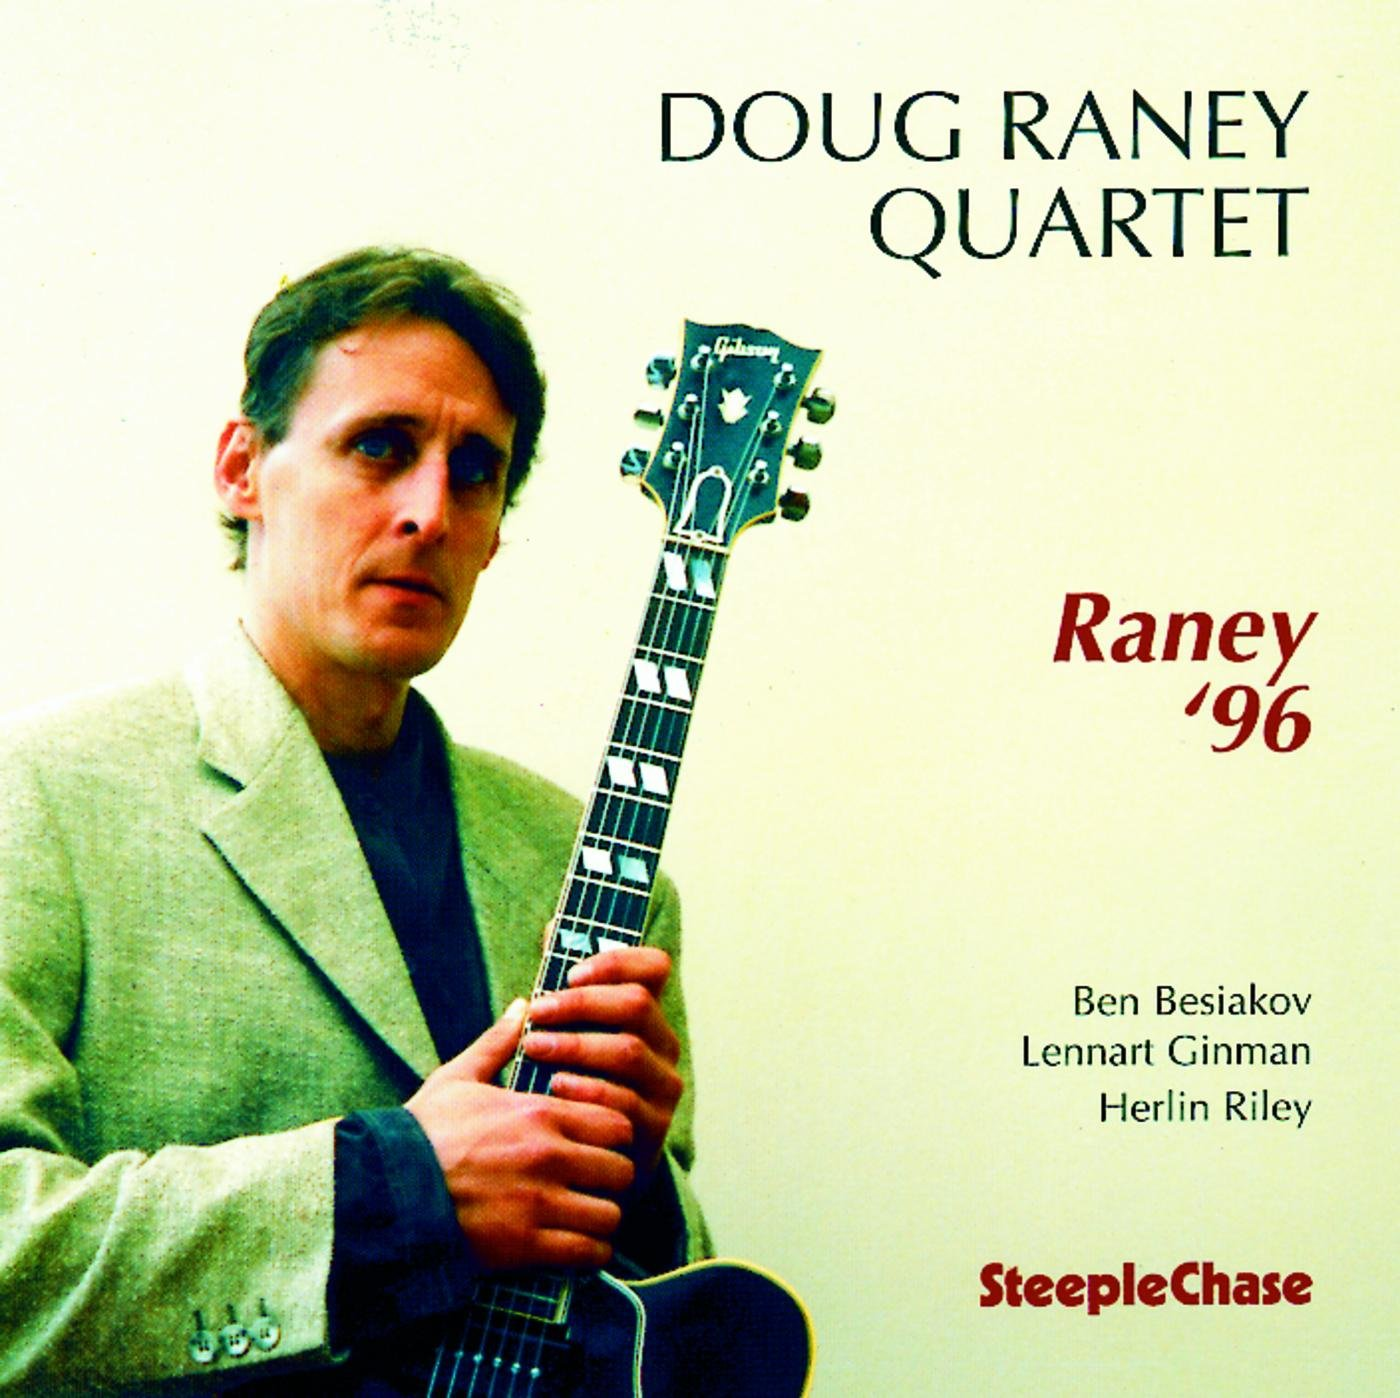 Raney 96 Cheap sale Special price for a limited time